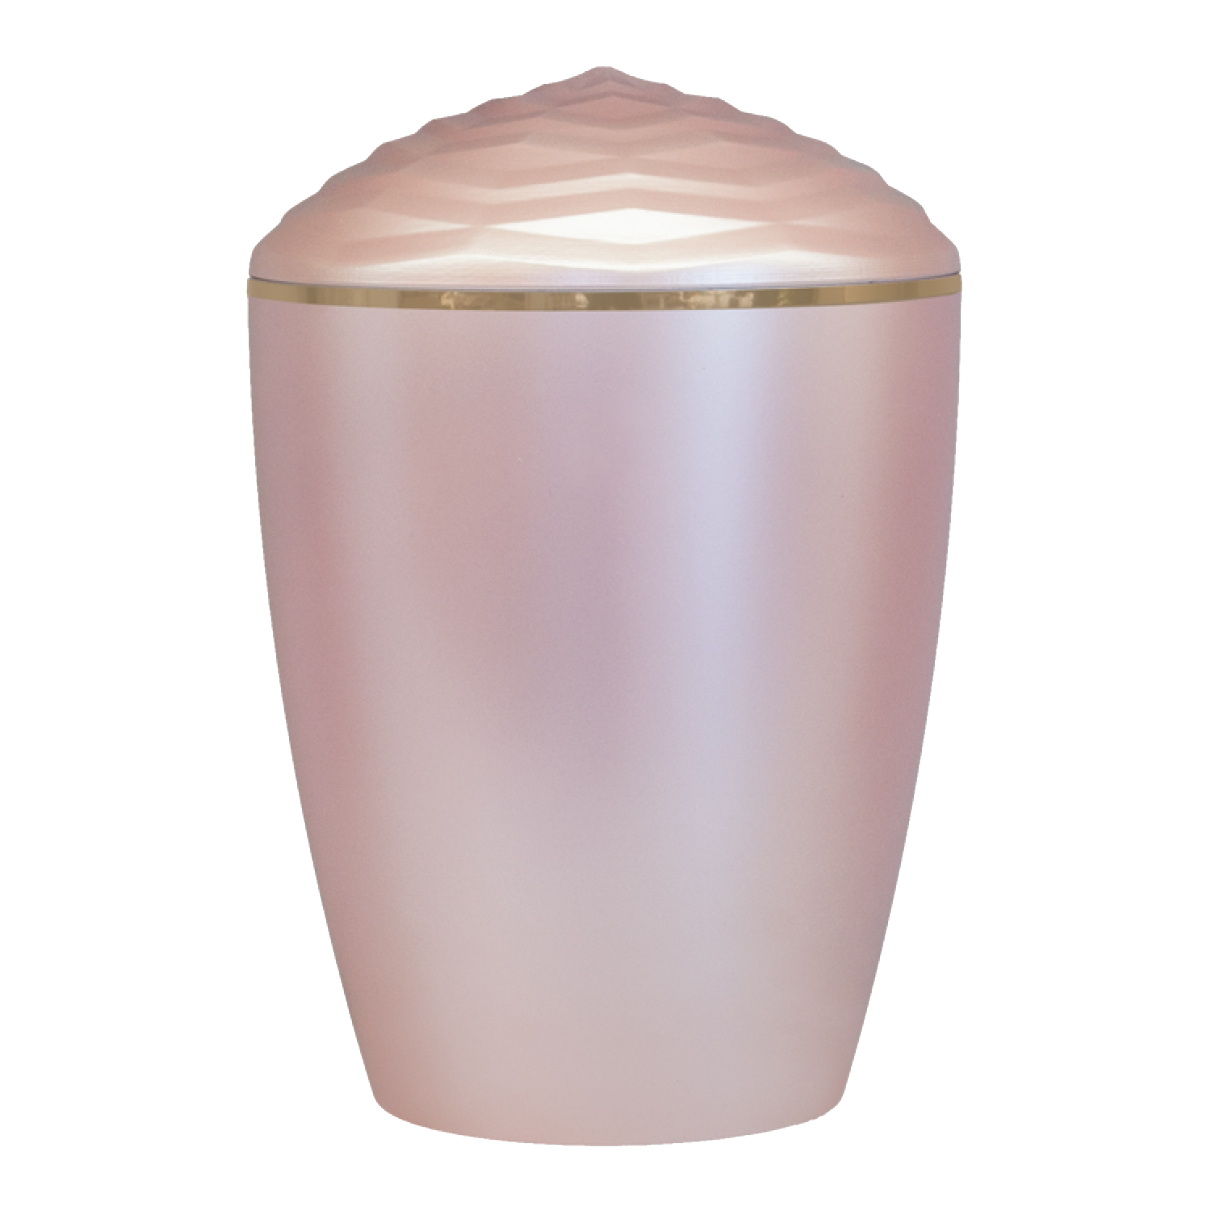 Forest Gold Band Bio Cremation Urn – Rose